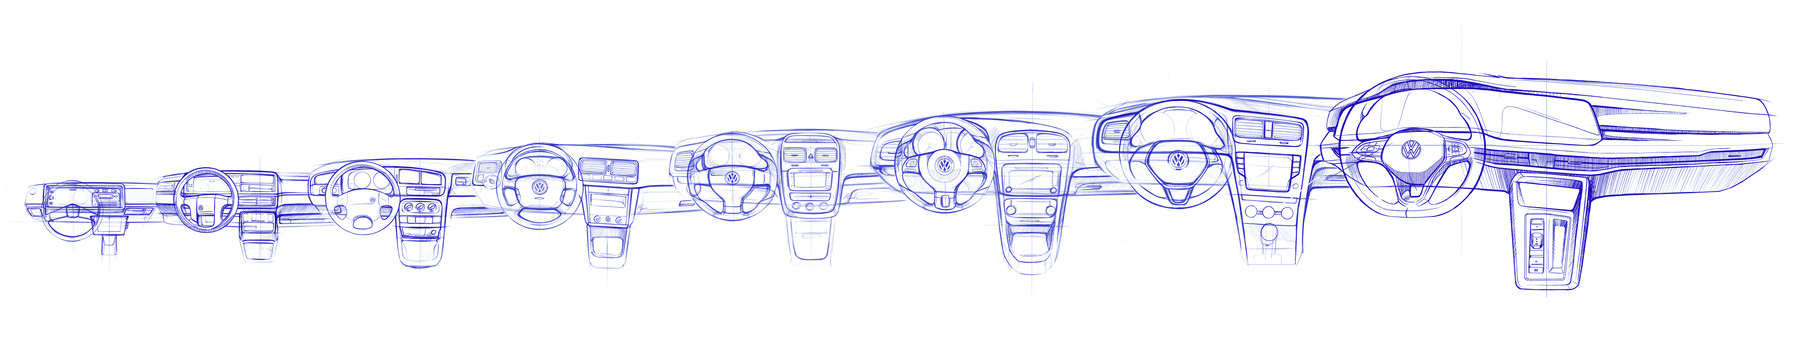 The all-new Golf (design sketch)